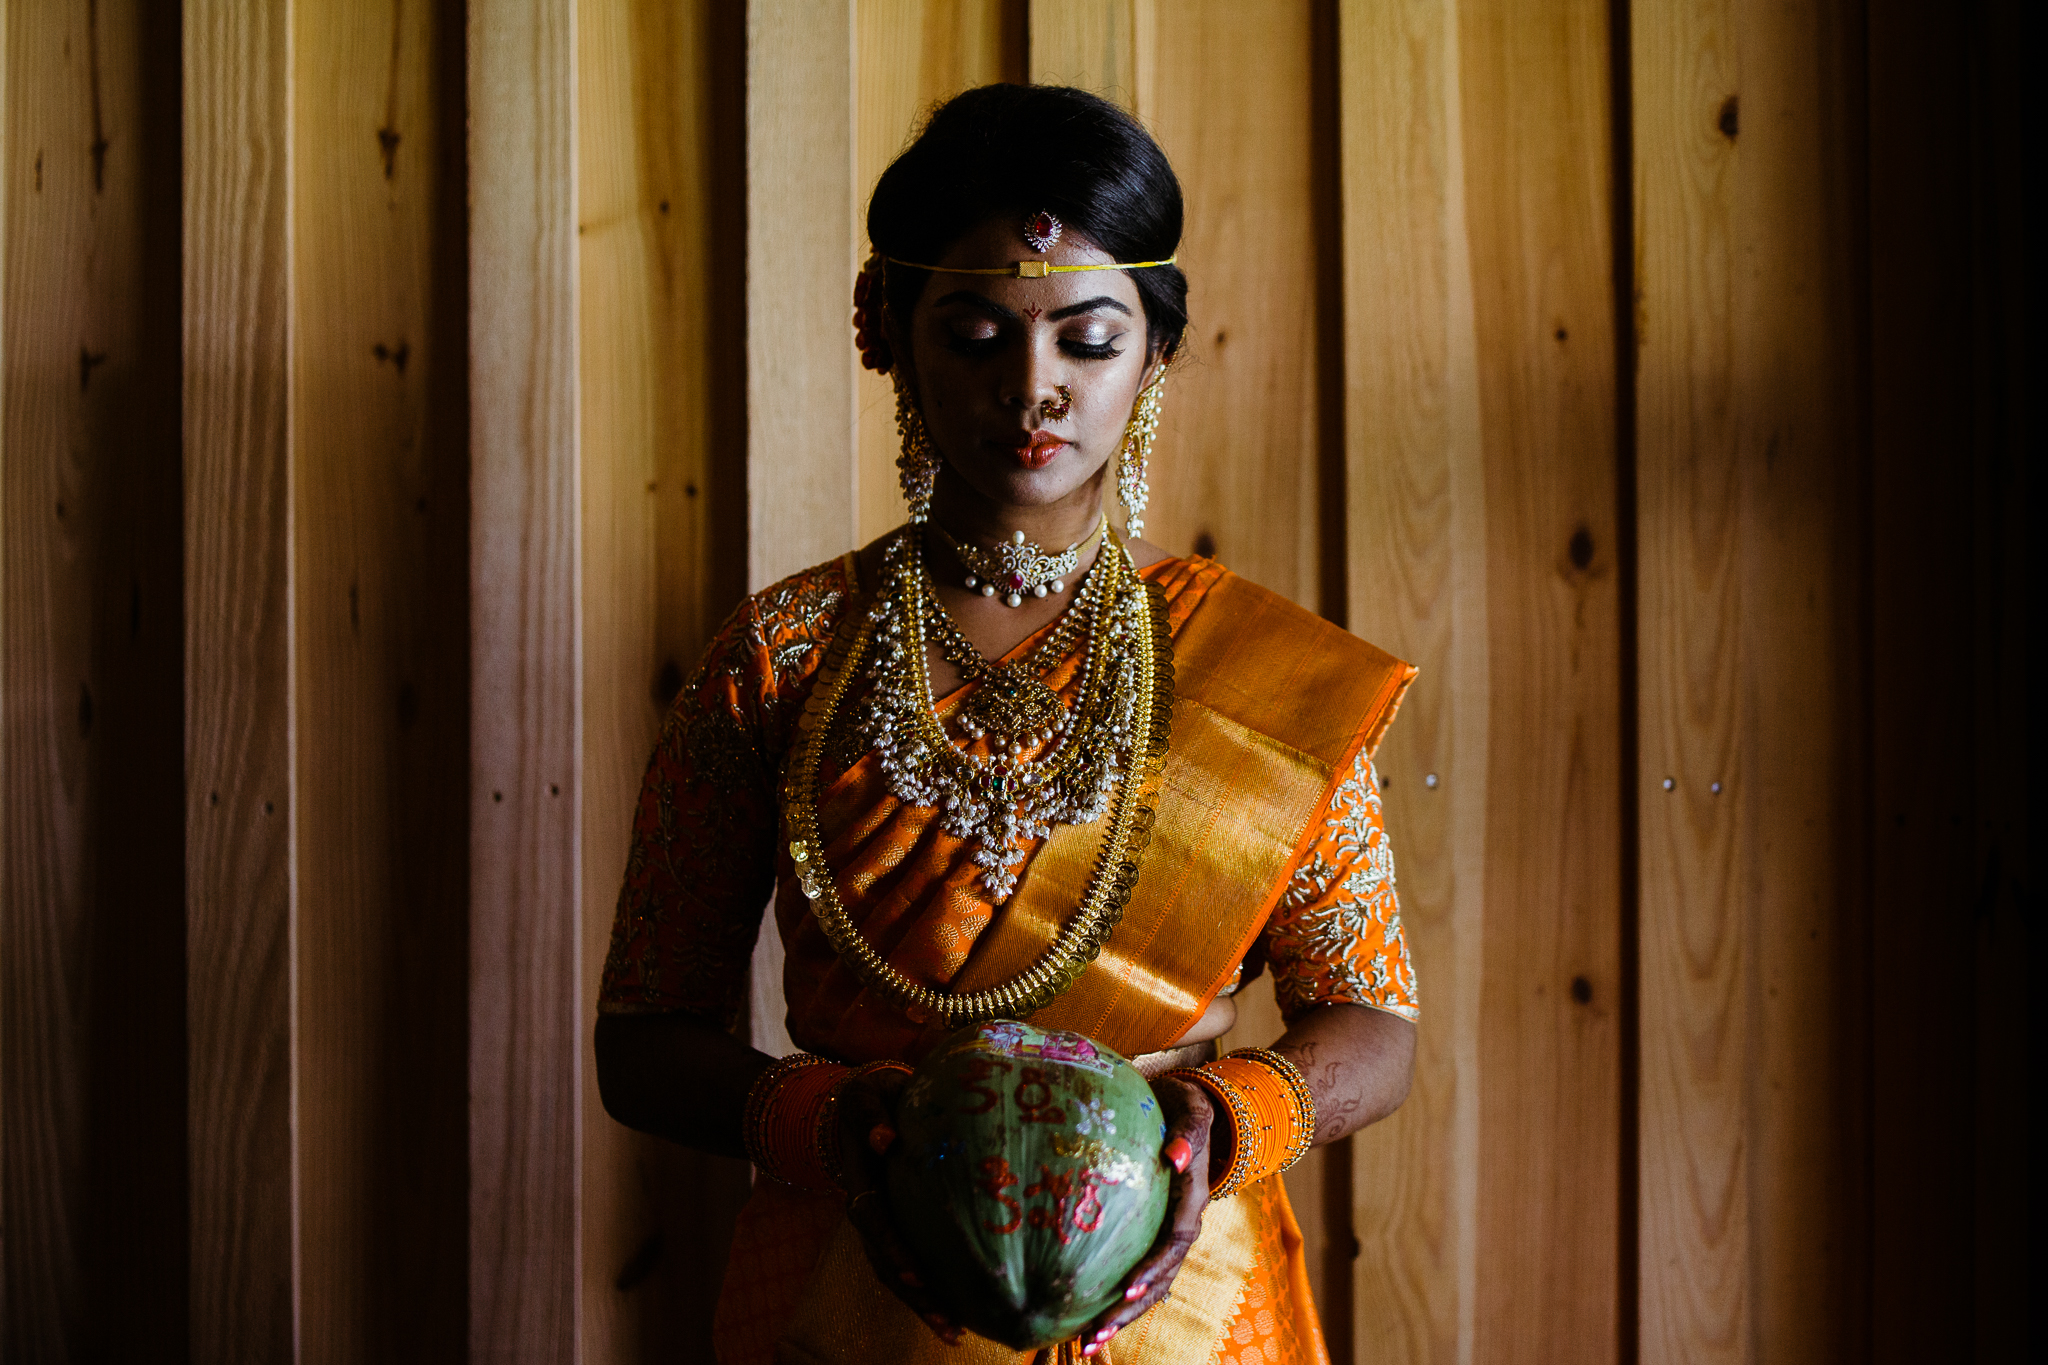 Keerthi and Kishore - Indian Wedding - elizalde photography - Dallas Photographer - South Asian Wedding Photographer - The SPRINGS Event Venue (64 of 226).jpg